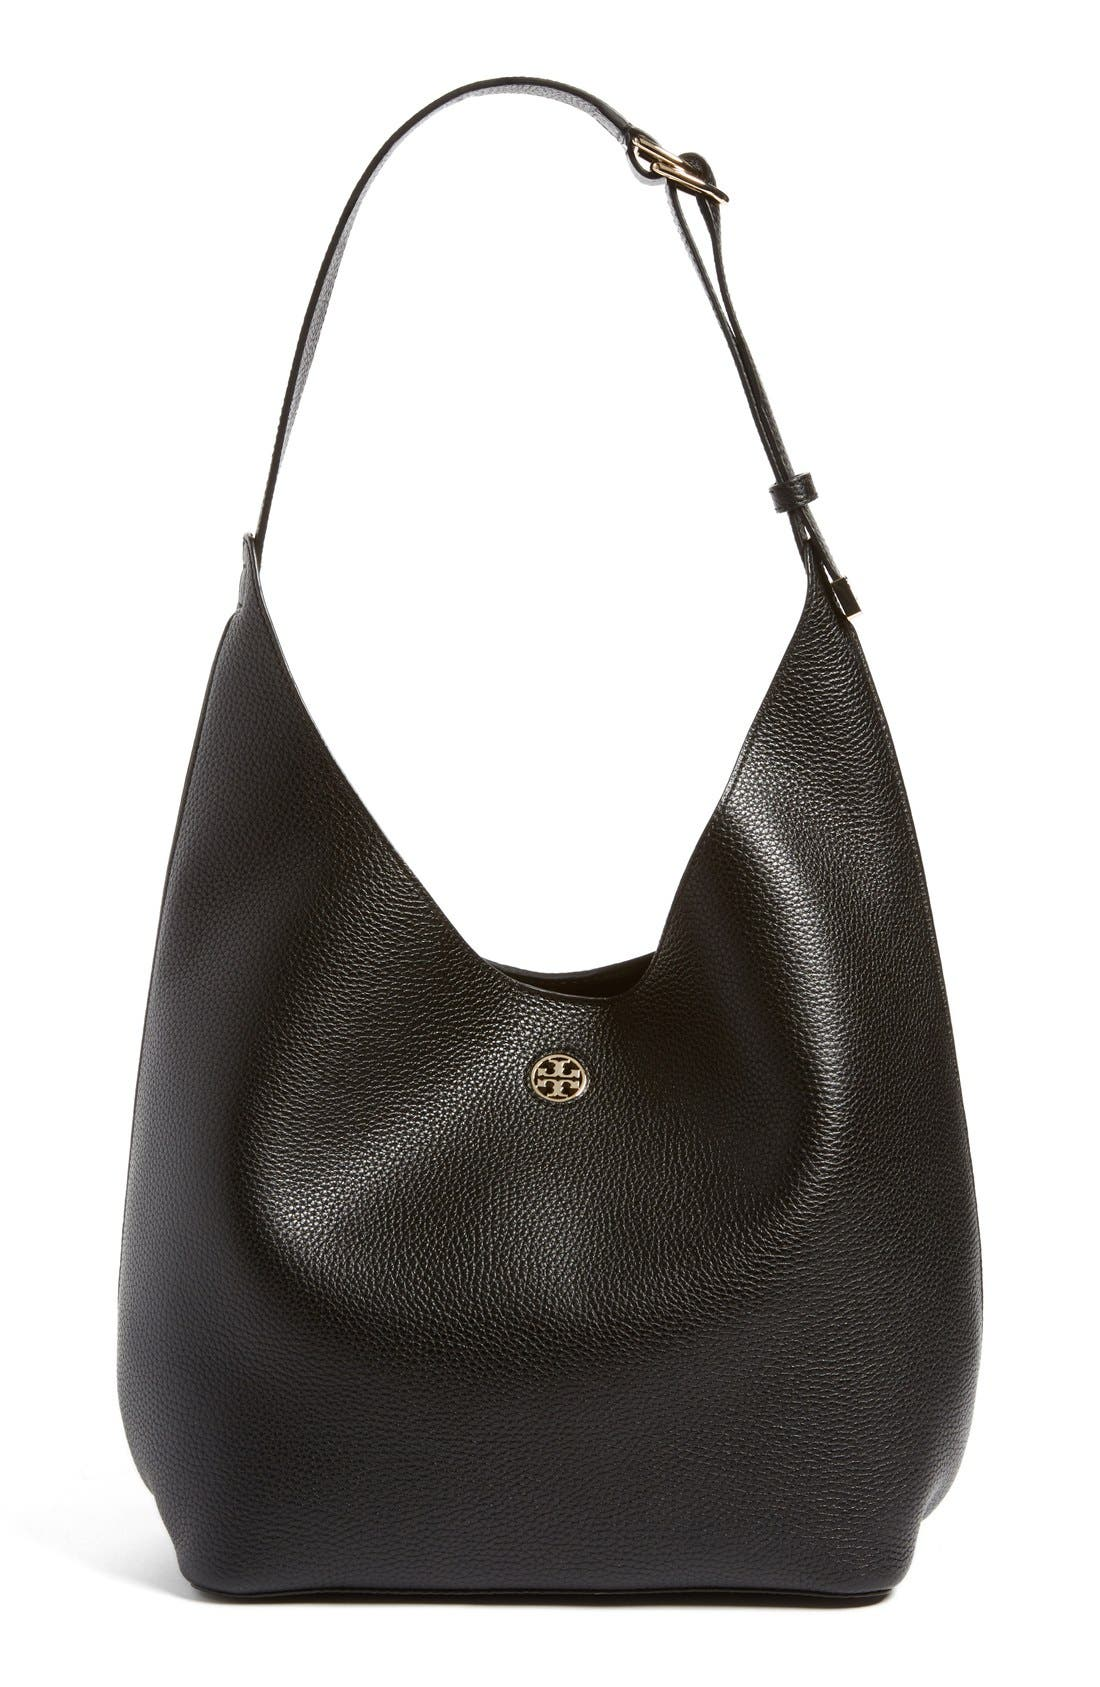 Alternate Image 1 Selected - Tory Burch 'Perry' Leather Hobo